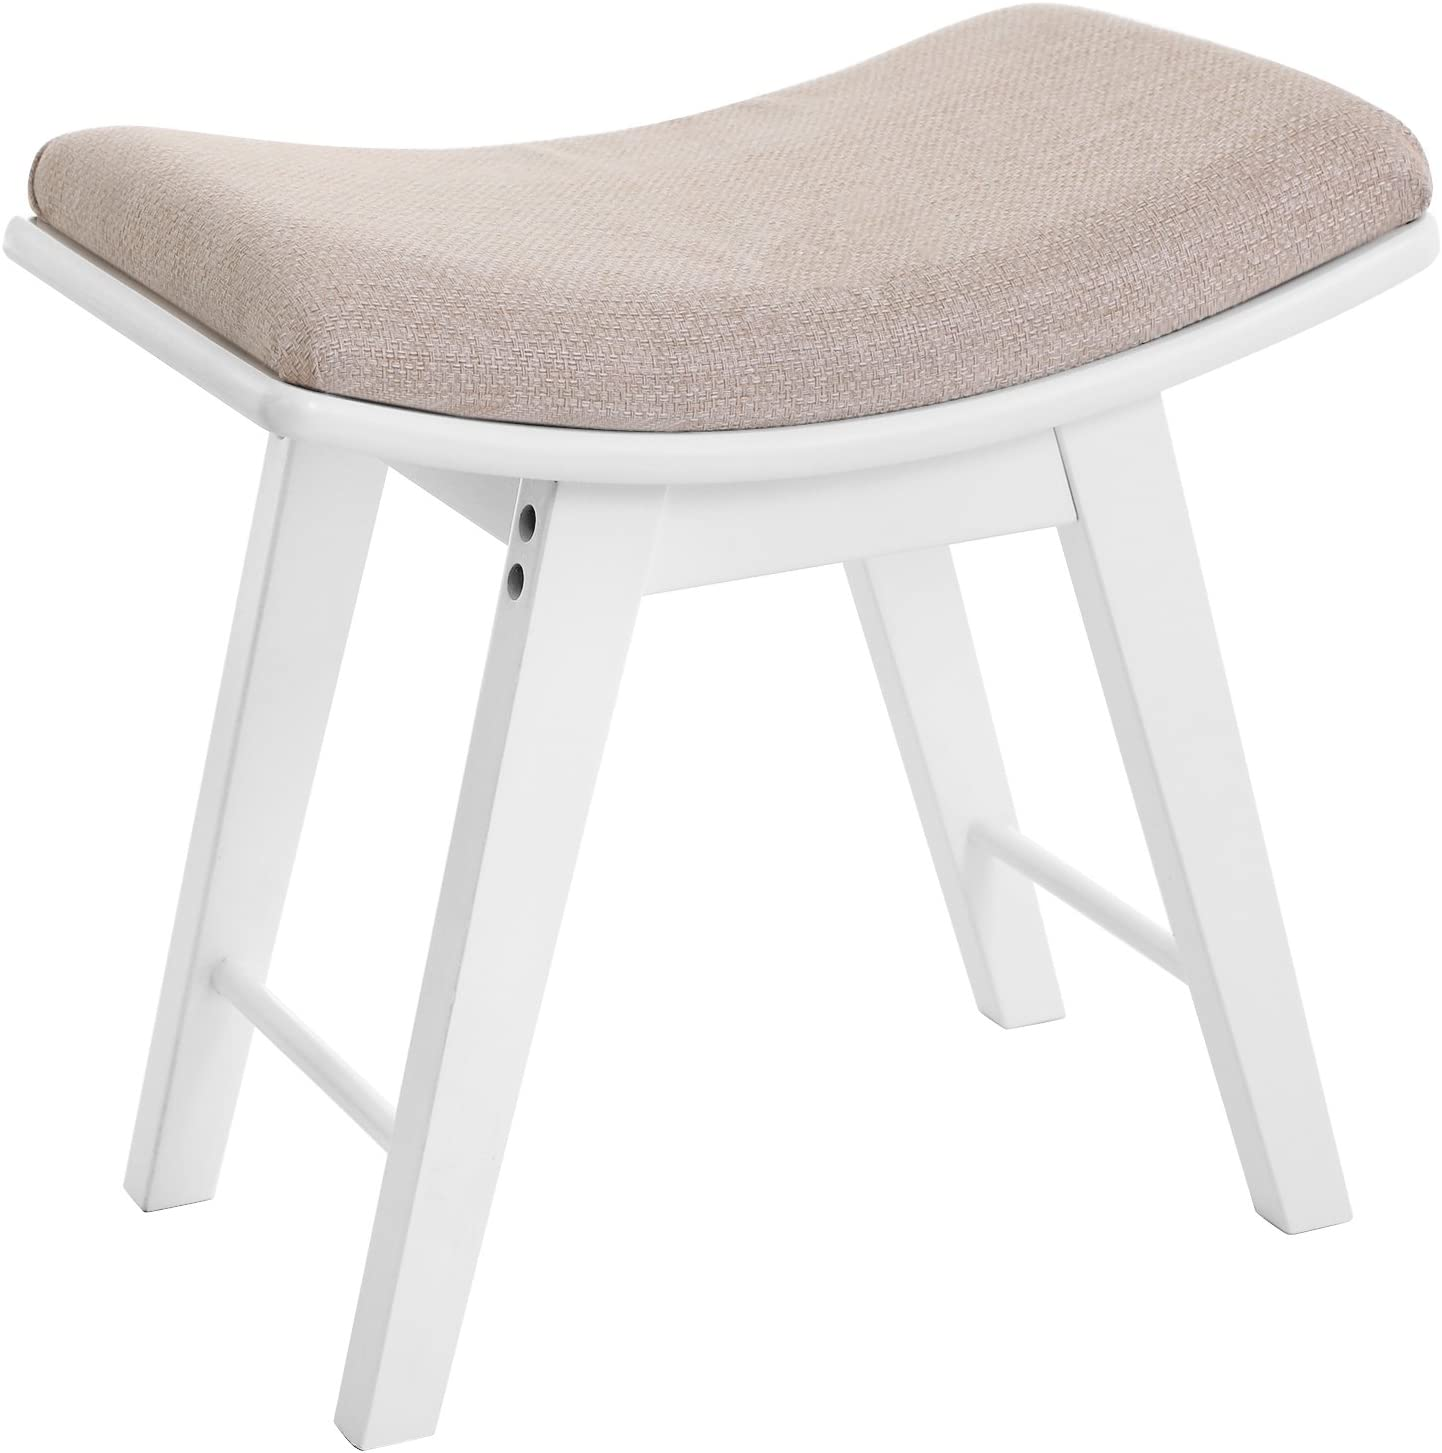 7. Songmics Vanity Stool